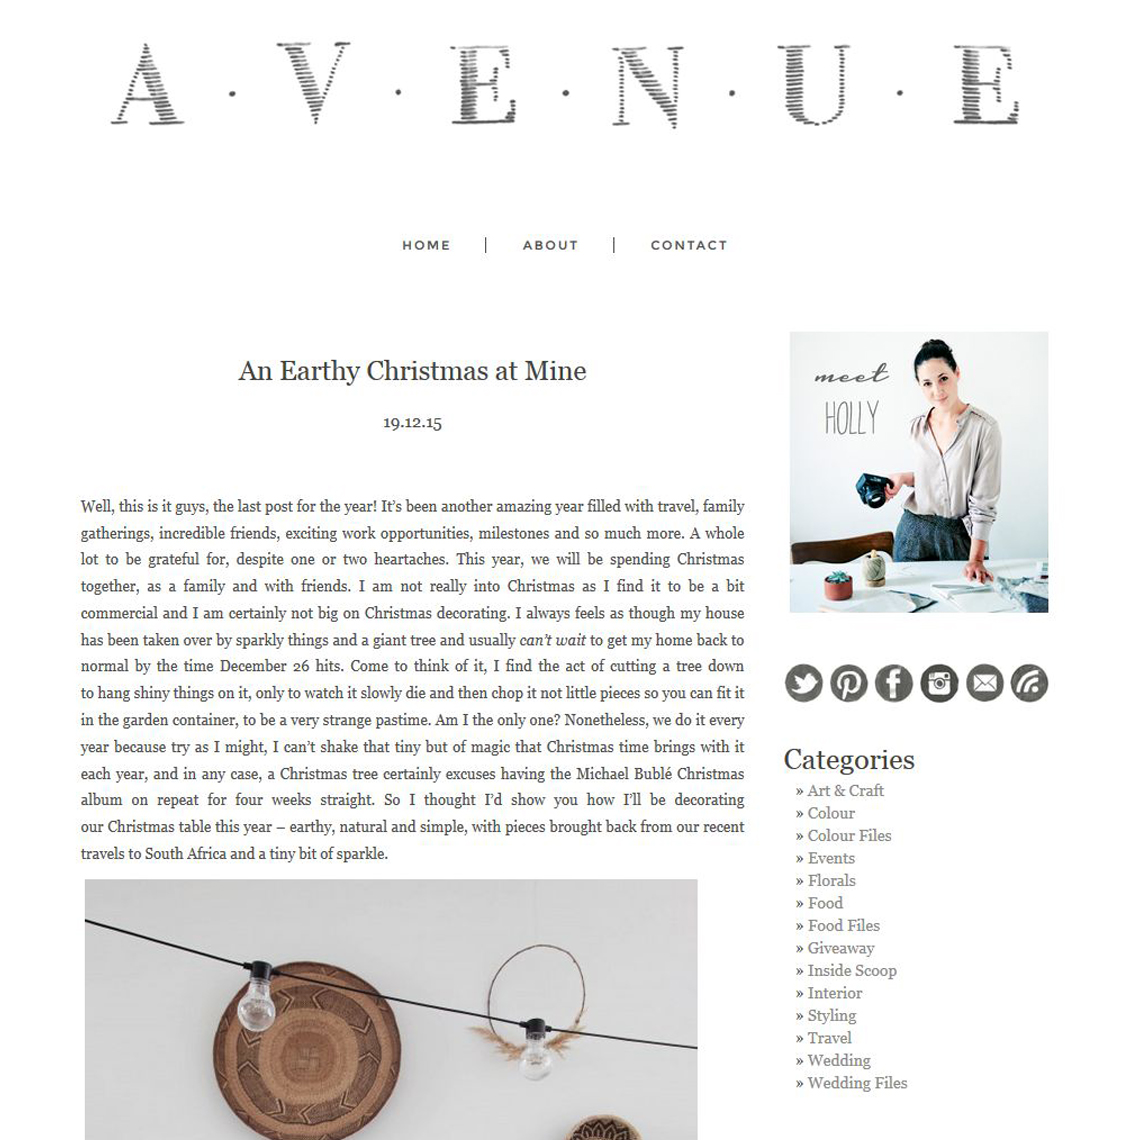 bloved-lifestyle-blog-top-10-style-blogs-2016-avenue-lifestyle